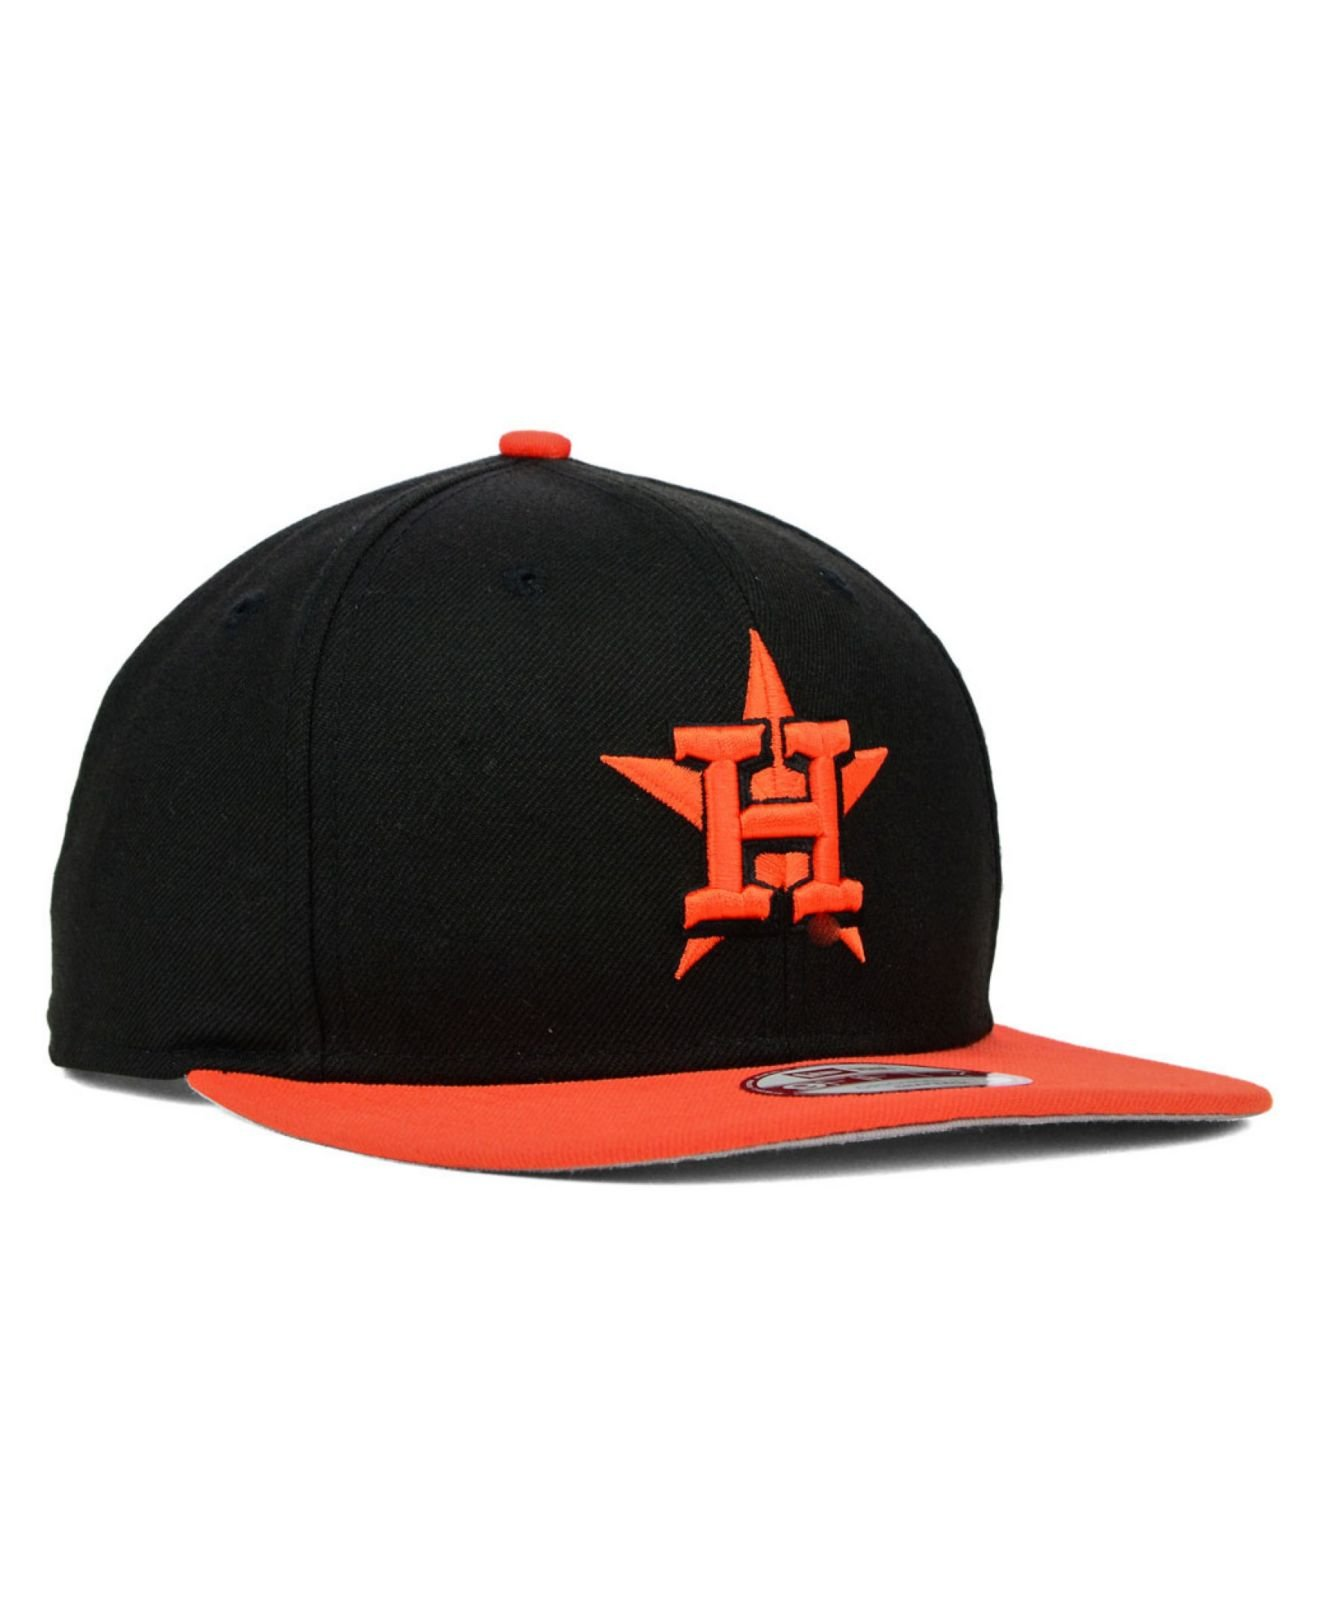 sneakers for cheap 73d70 bc410 ... australia black gray bt 9fifty snapback cap lyst ktz houston astros  twisted original fit 9fifty snapback